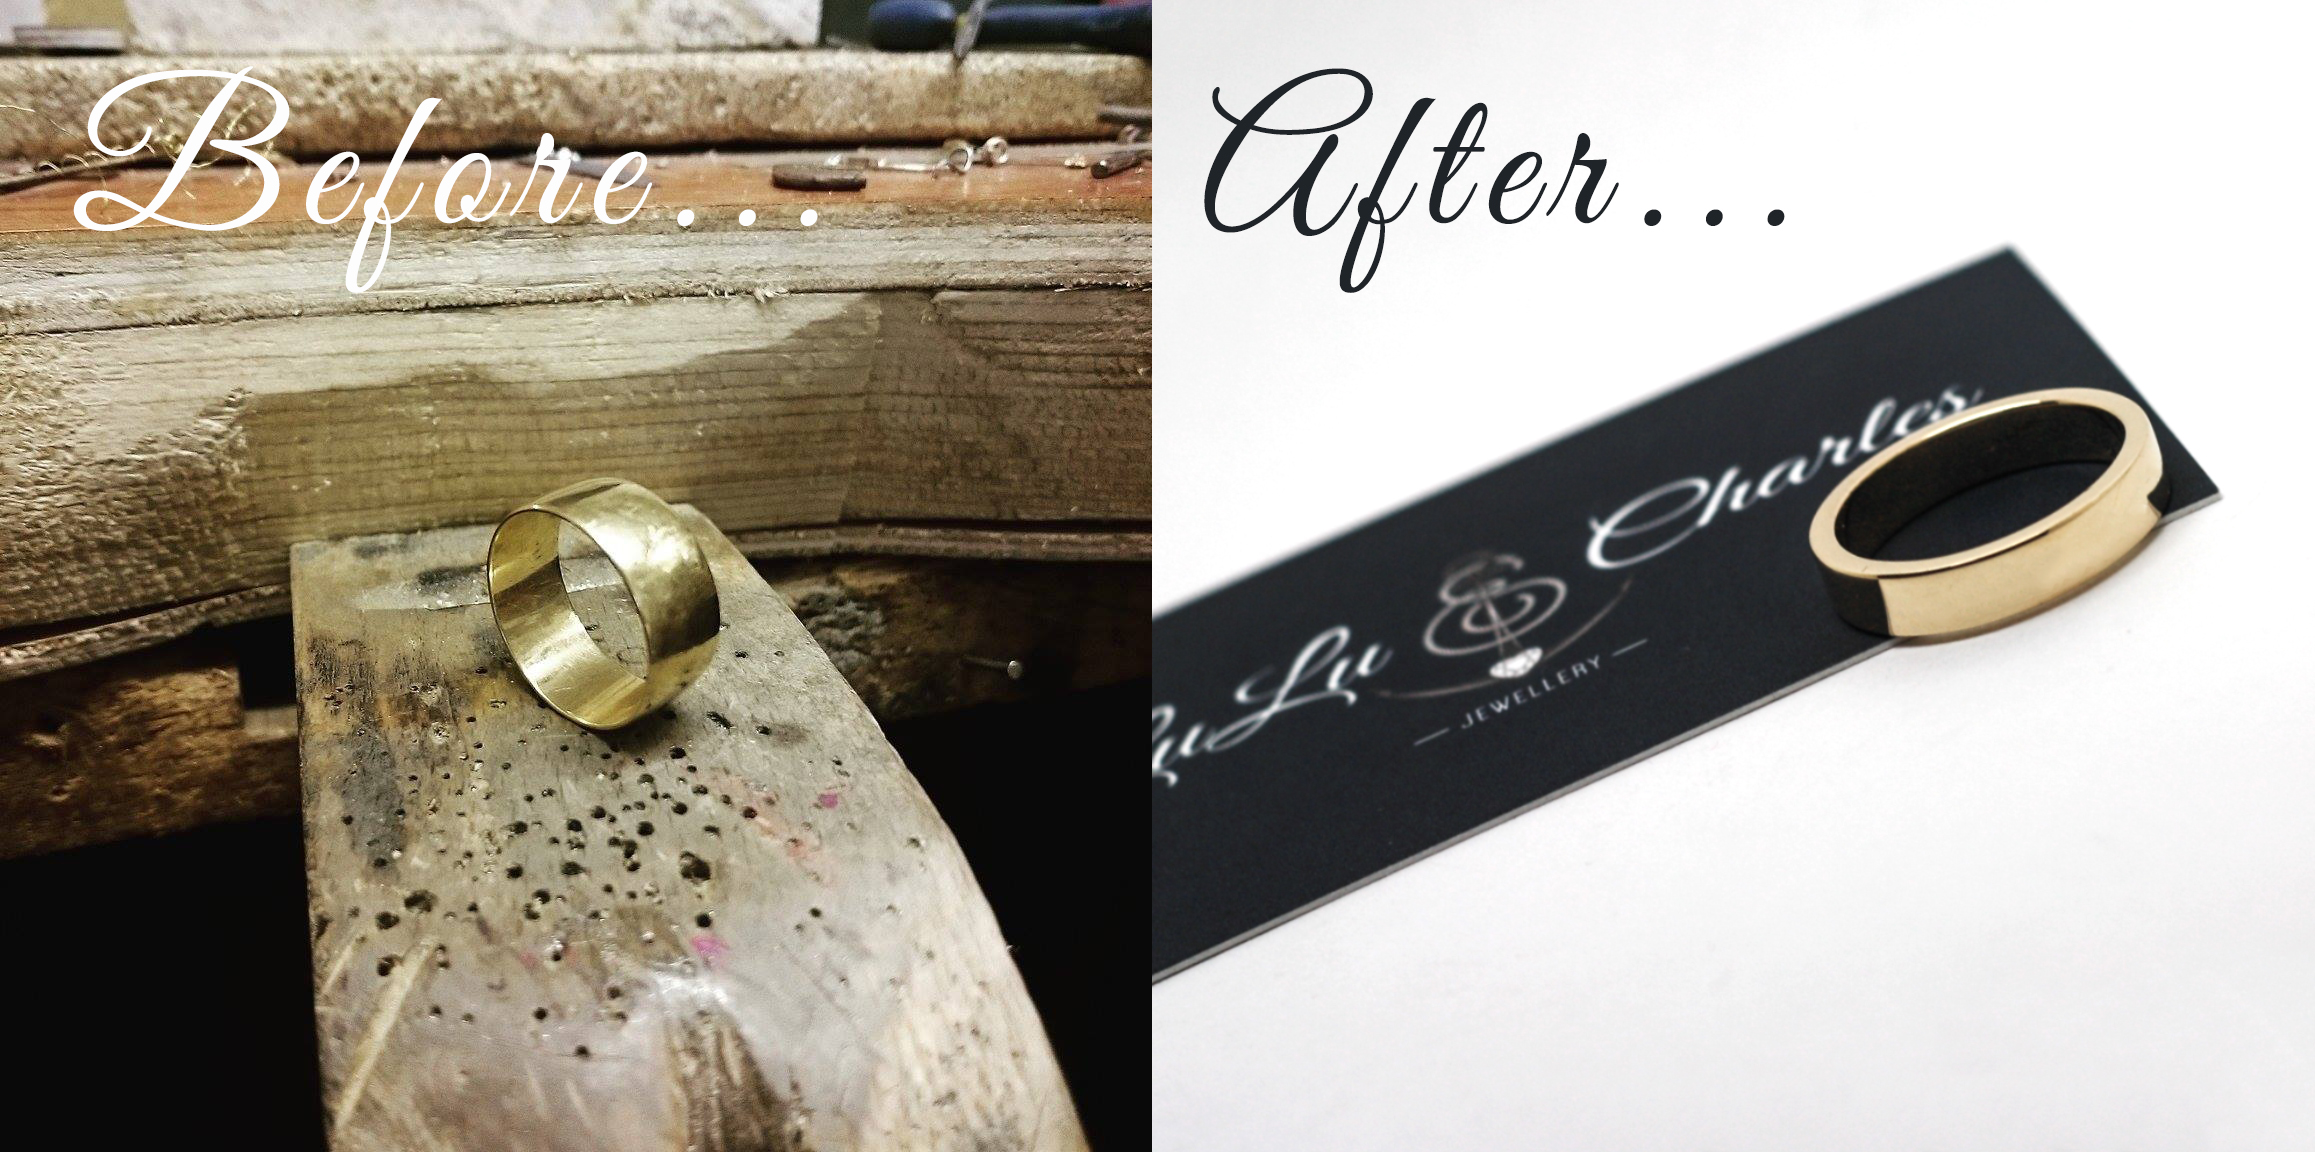 Before & After photos of remodelled 9ct gold wedding band, handmade by lulu & Charles jewellery, based in County Durham, Near Newcastle upon tyne. Bespoke remodelled jewellery.